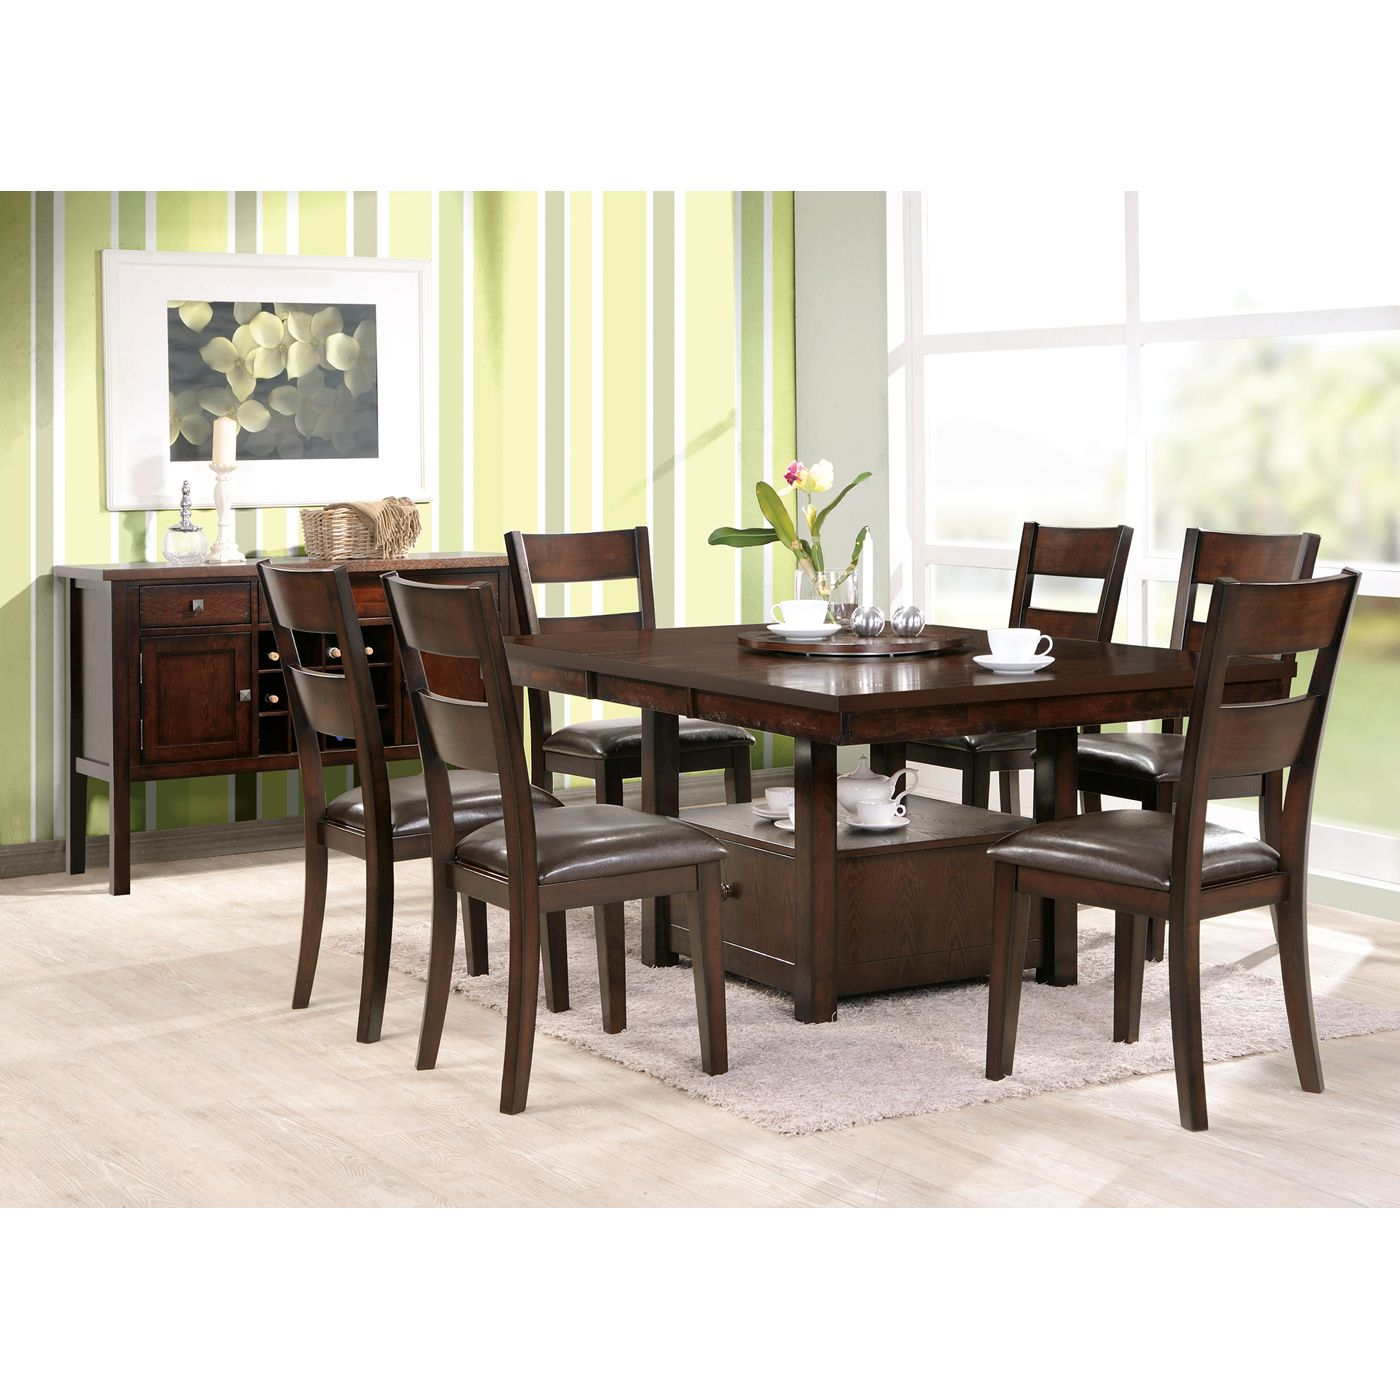 Steve Silver Company Gibson Storage Dining Set